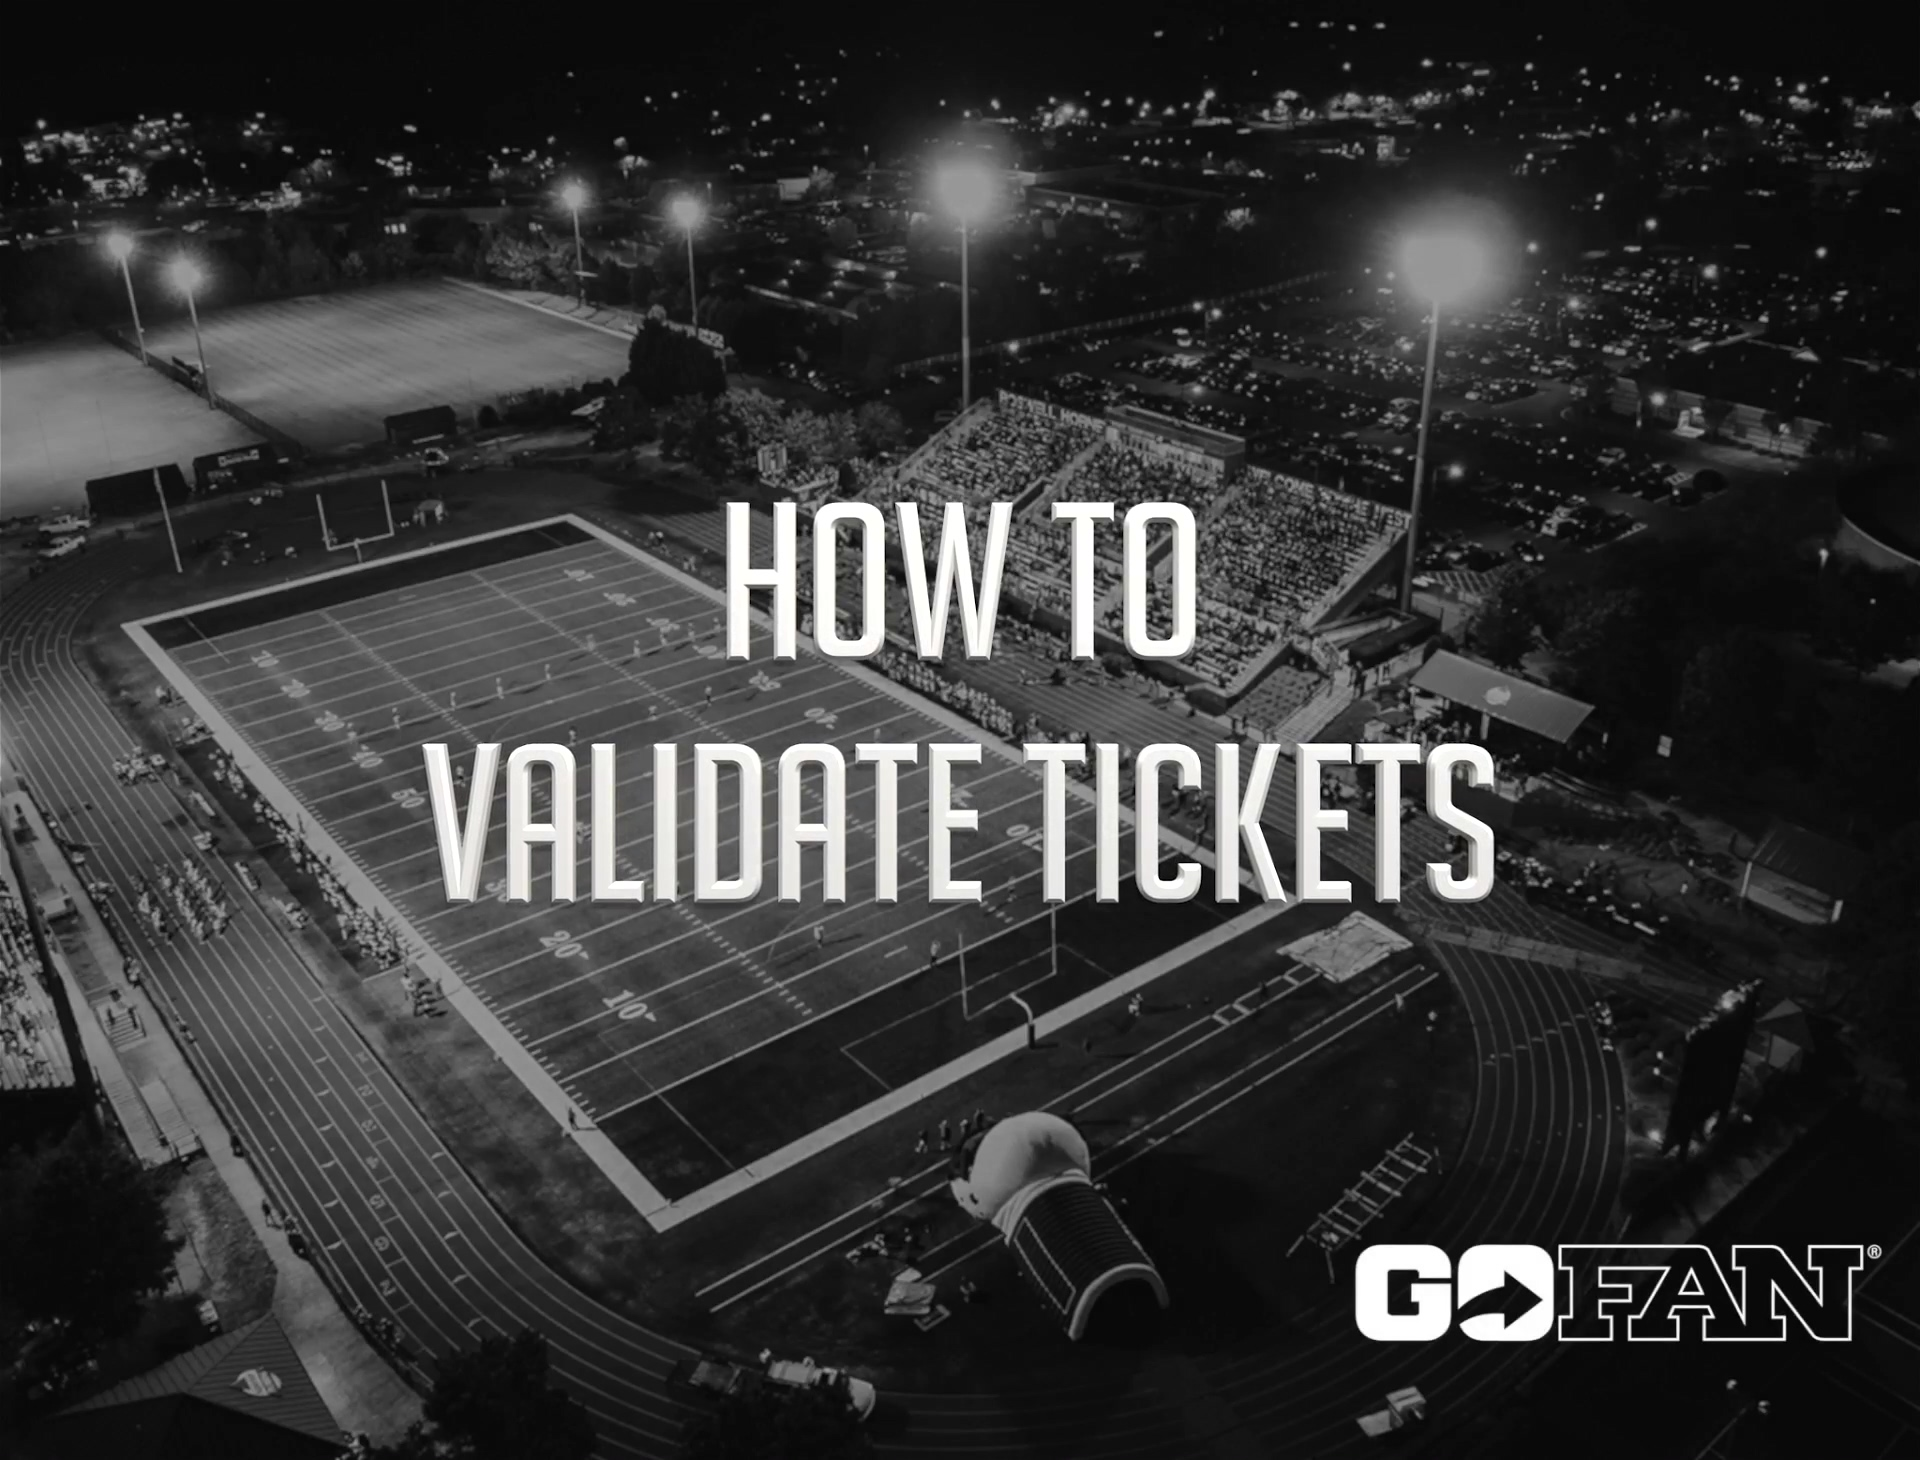 GoFan - How to Validate Tickets 2021 - HD 1080p